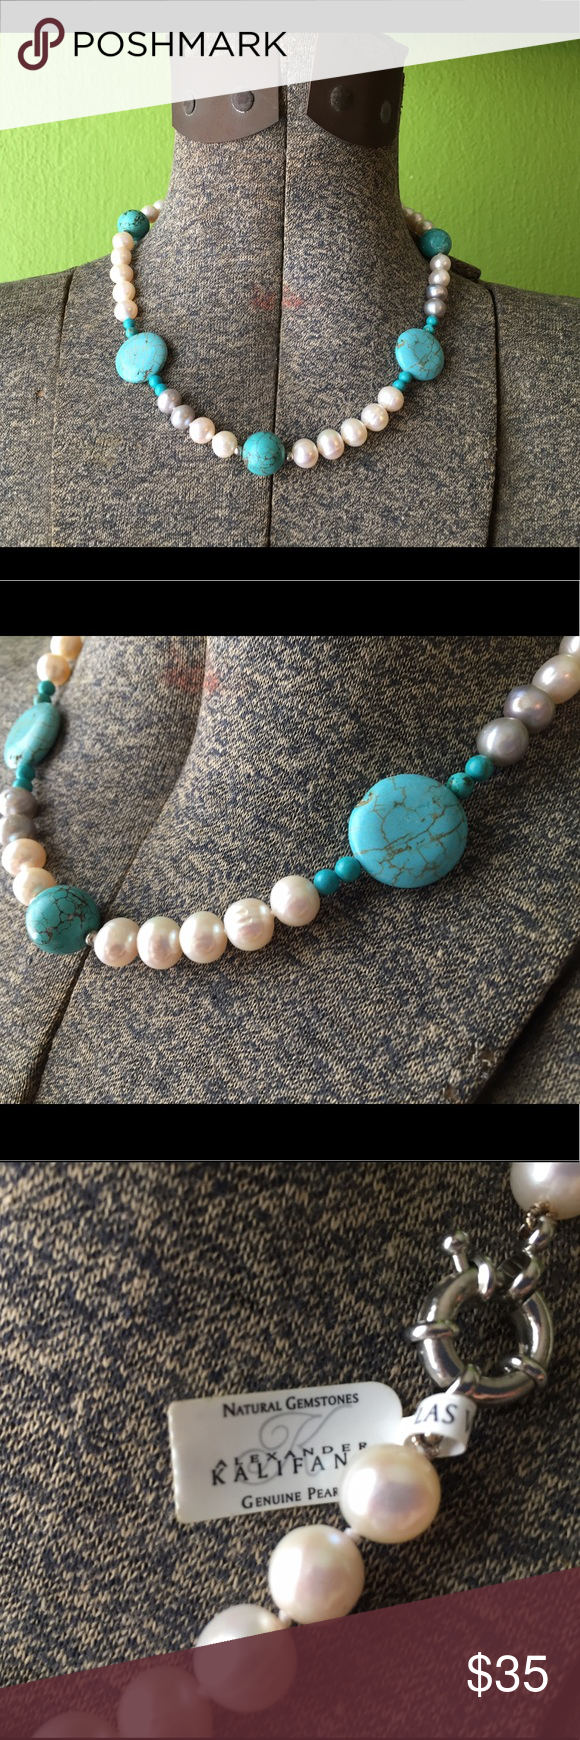 Pearl & Turquoise Necklace Genuine pearl and turquoise necklace by Alexander Kalifano.  New with tag!  Very heavy gemstone necklace with silver clasp in excellent condition! Alexander Kalifano Jewelry Necklaces